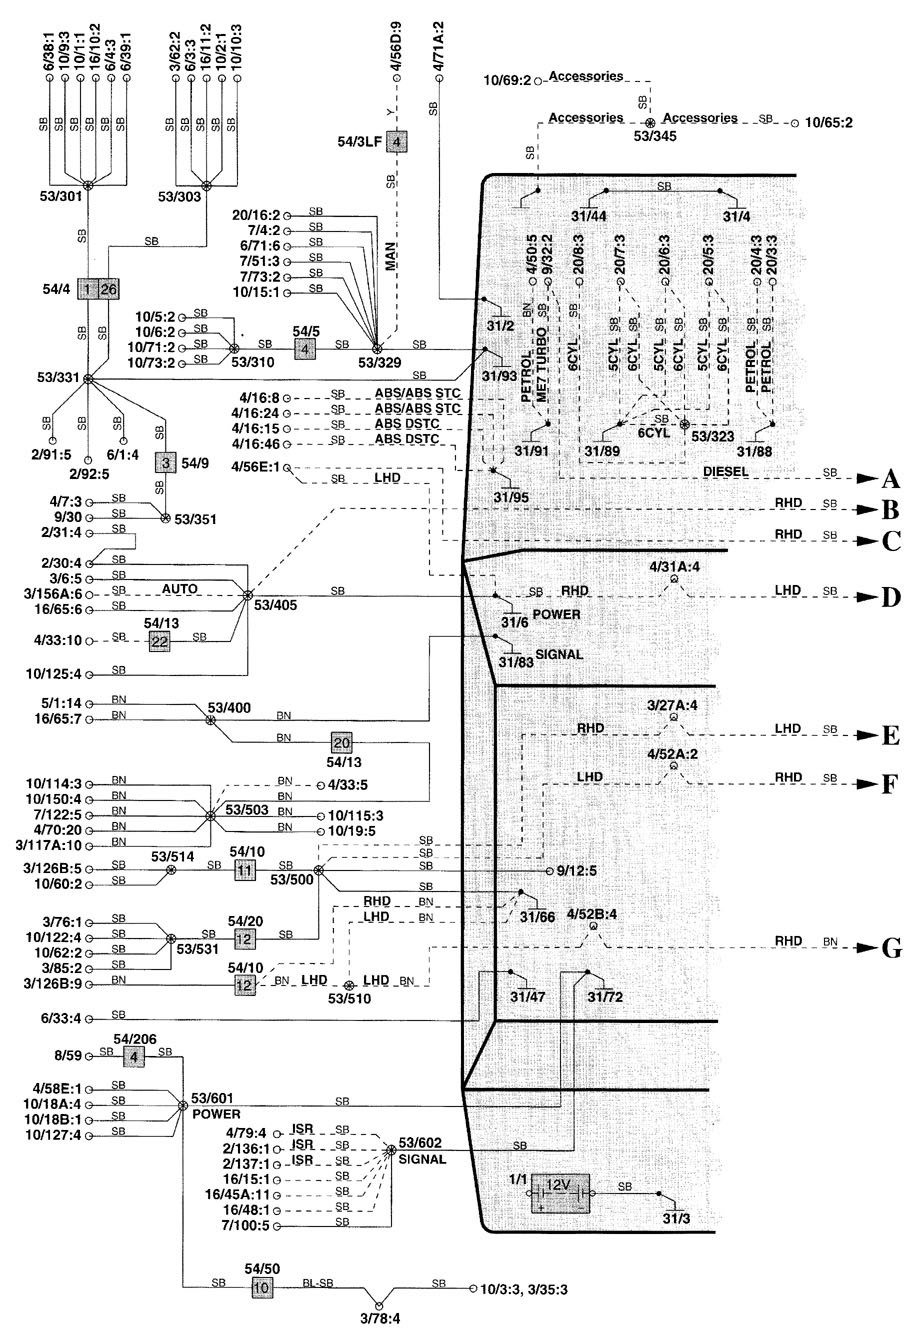 Volvo 850 Immobilizer Wiring Diagram Library 2000 S70 Example Electrical U2022 1999 S80 Vacuum Hoses